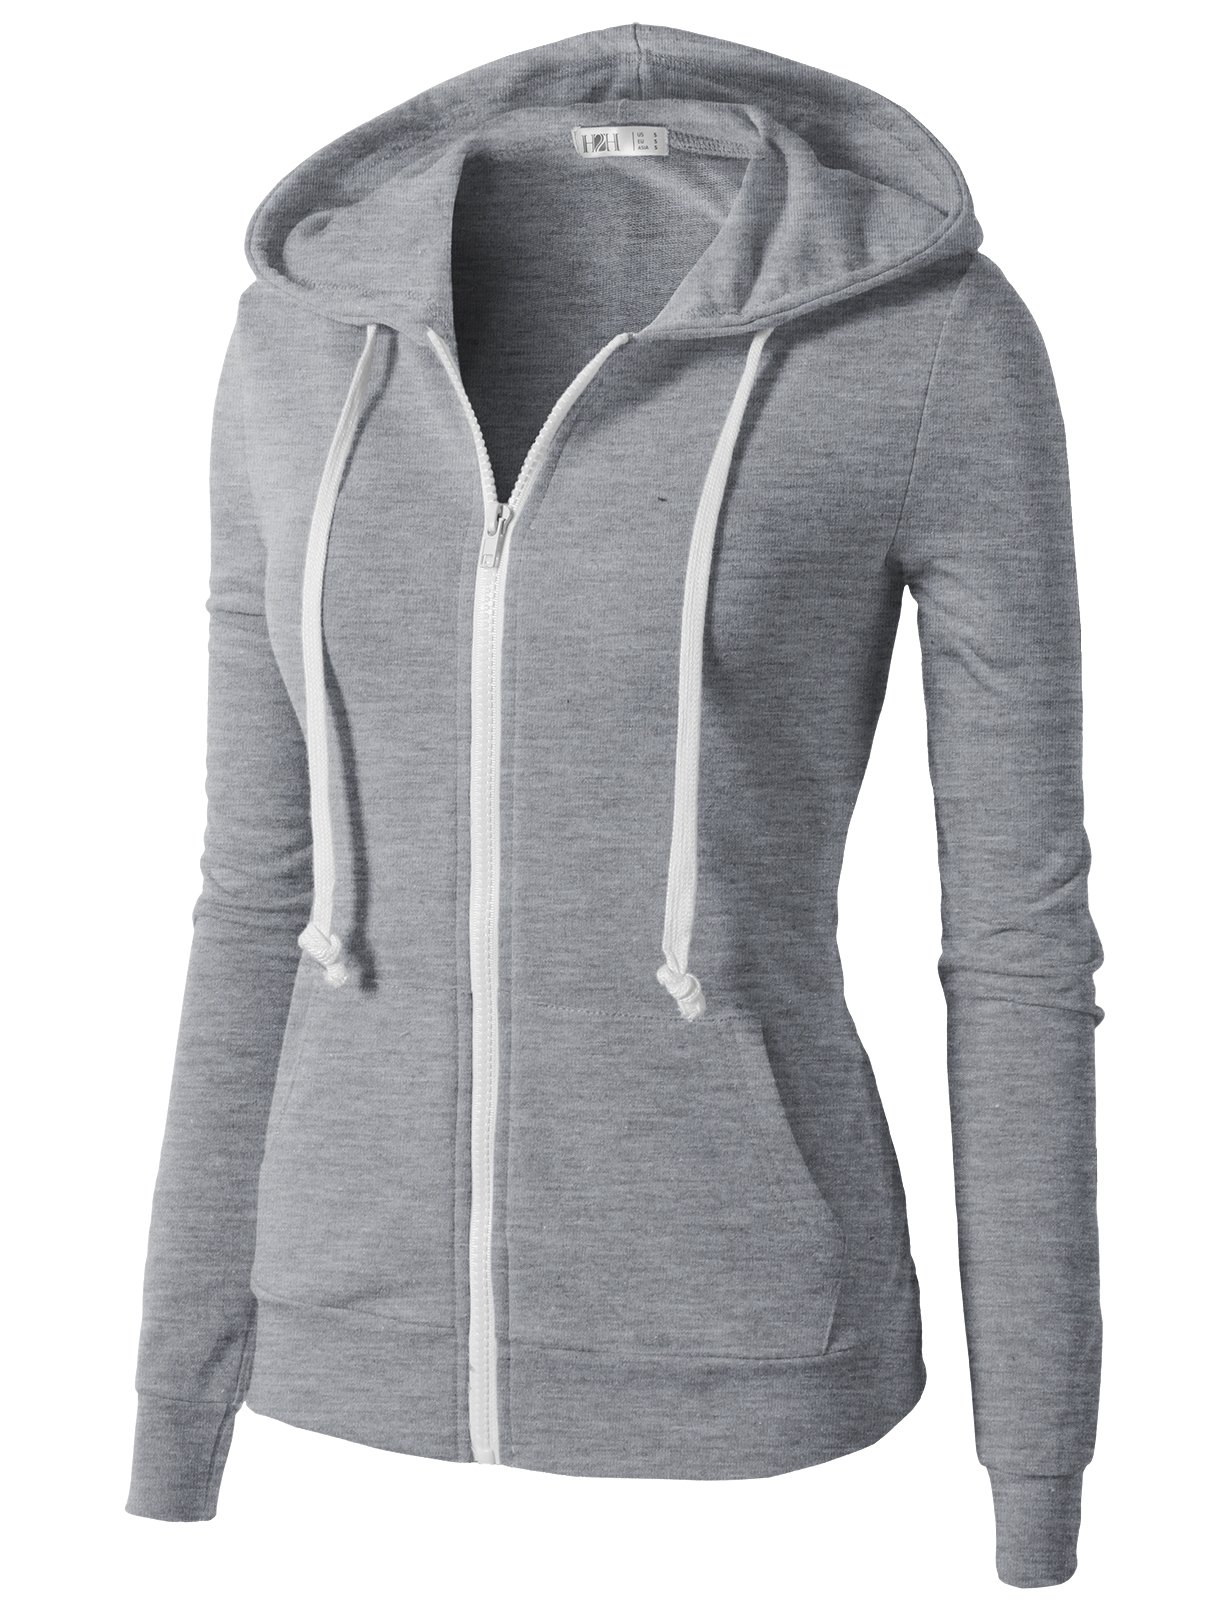 H2H Womens Soft Regular Fit Zip up Long Sleeve Fine Cotton Hoodie Jacket Gray US XS/Asia XS (CWOHOL020) by H2H (Image #2)